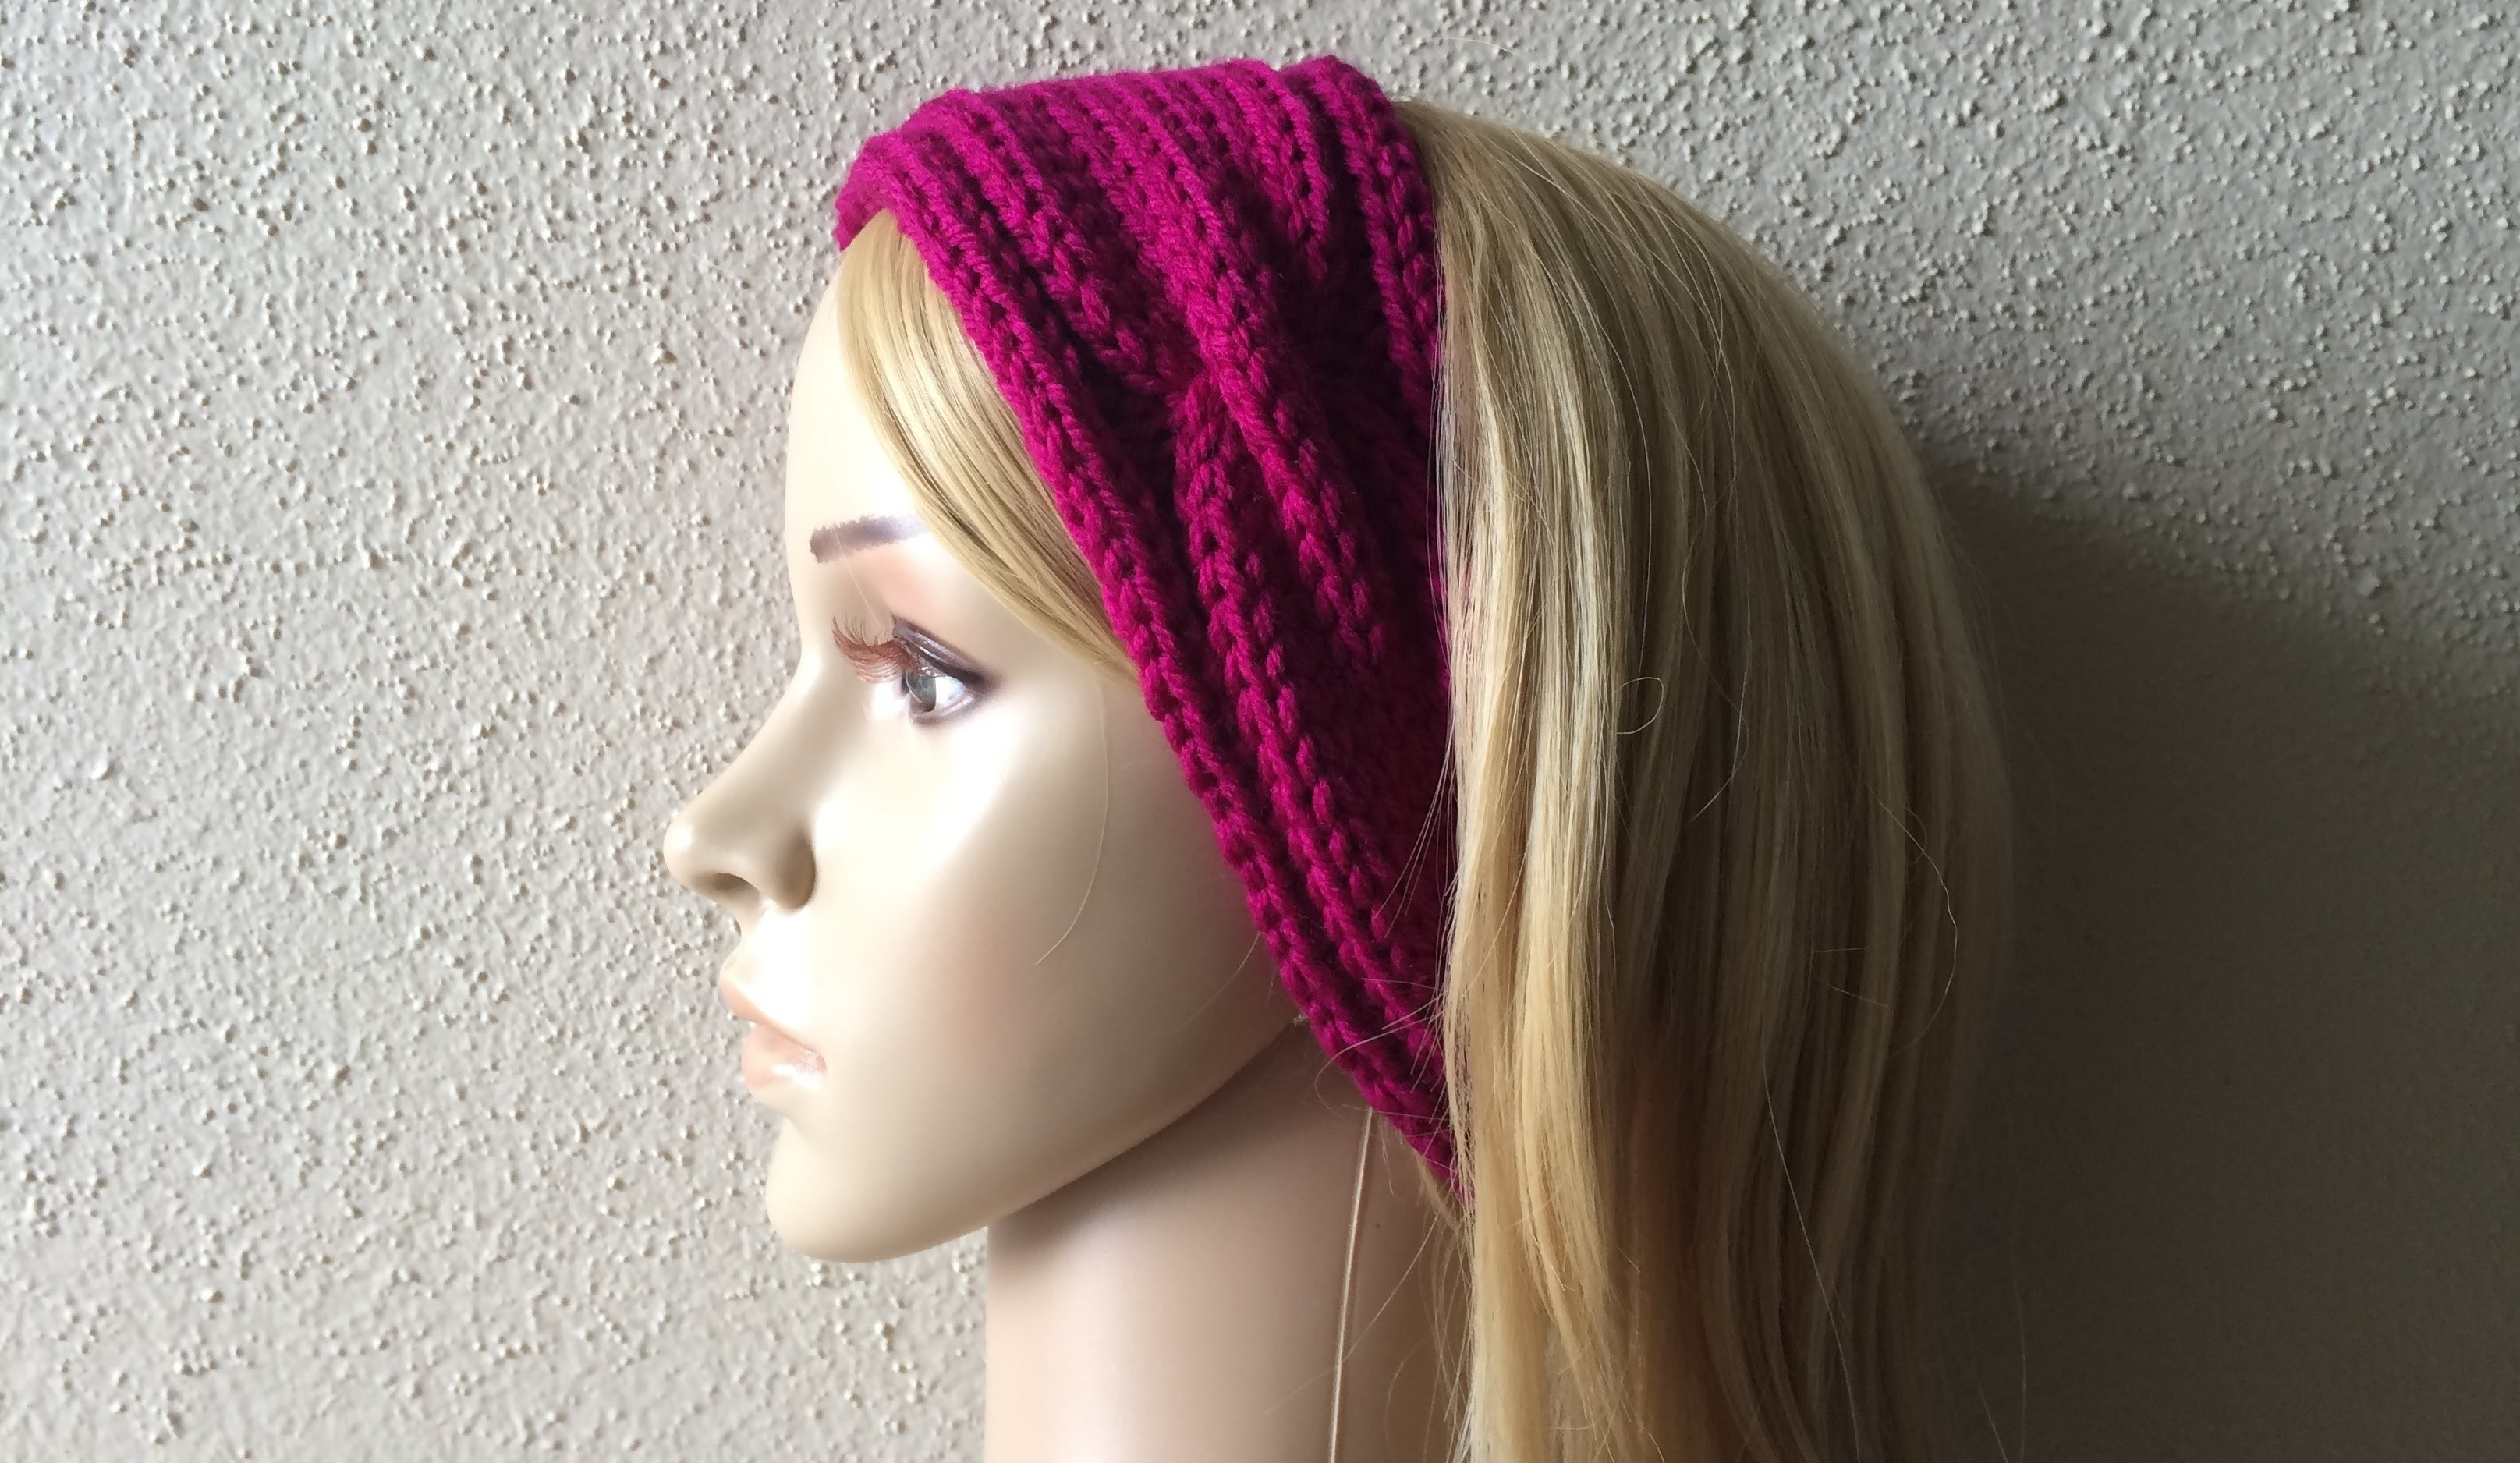 How To Knit A Chain Link Headband, Lilu's Knitting Corner Video # 51